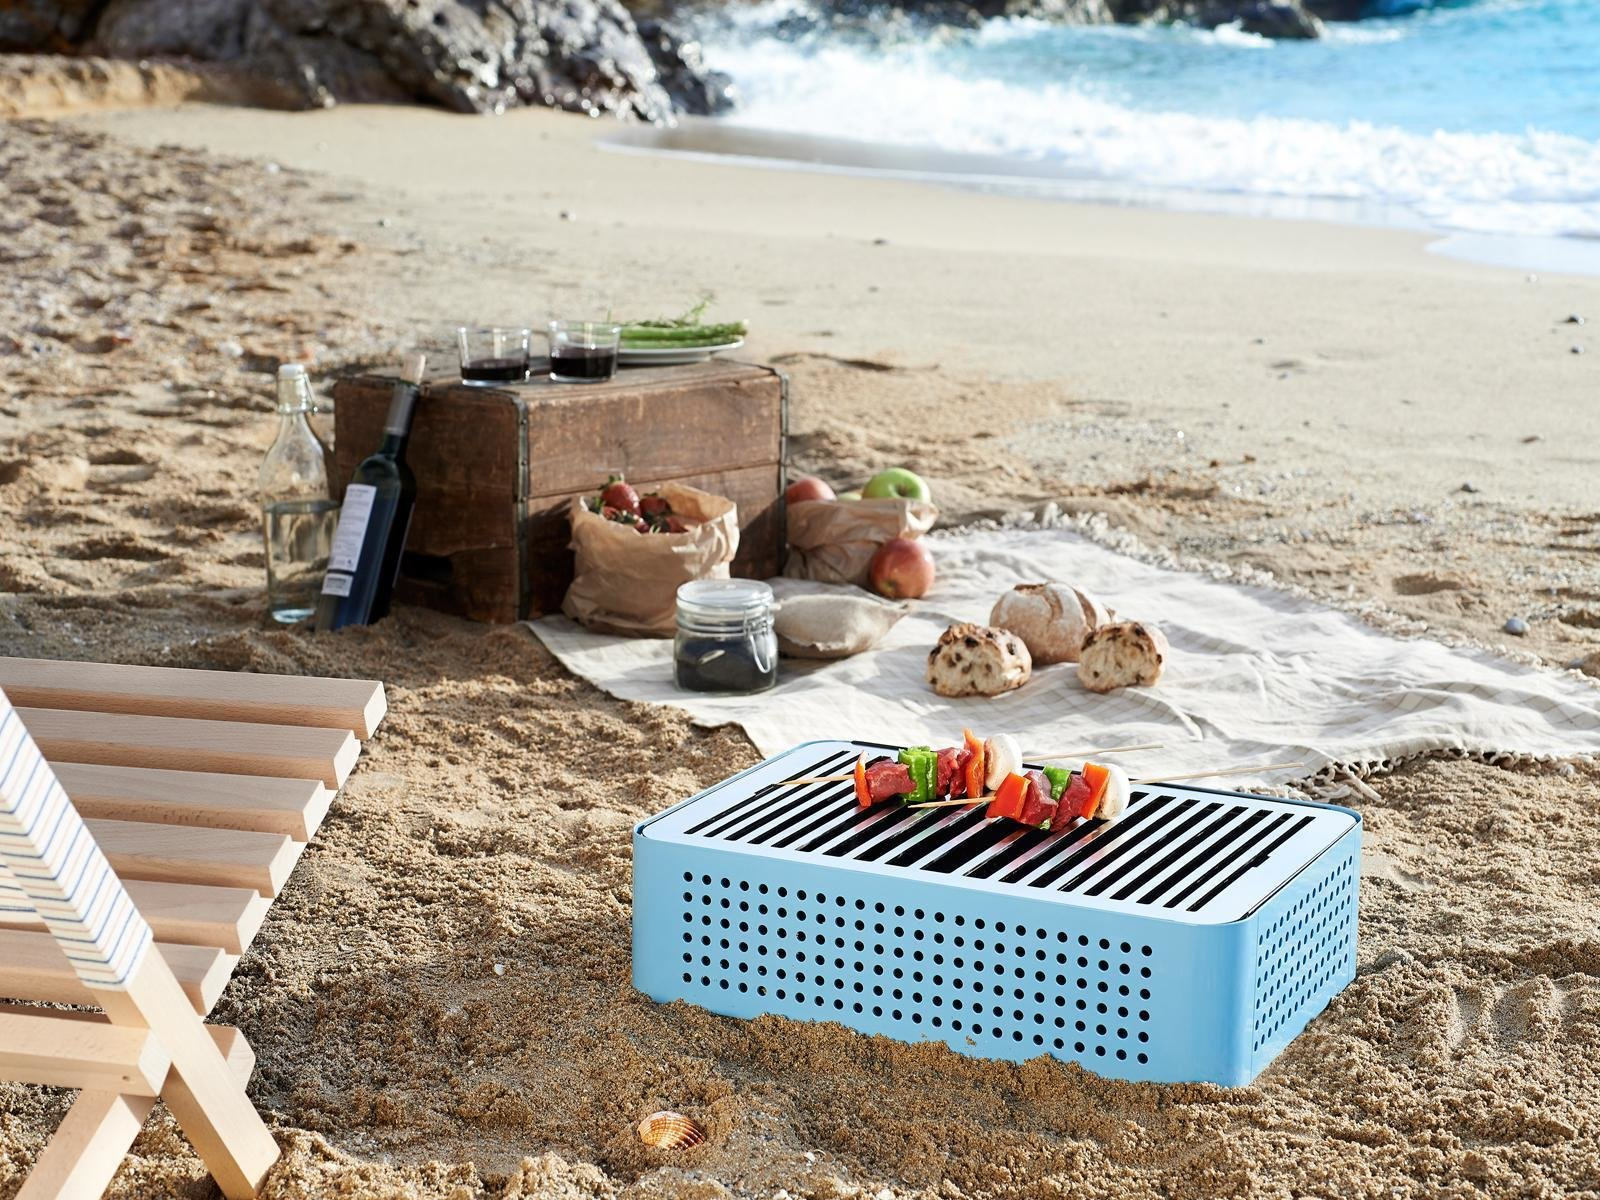 Portable Bbq Grill Mon Oncle V2